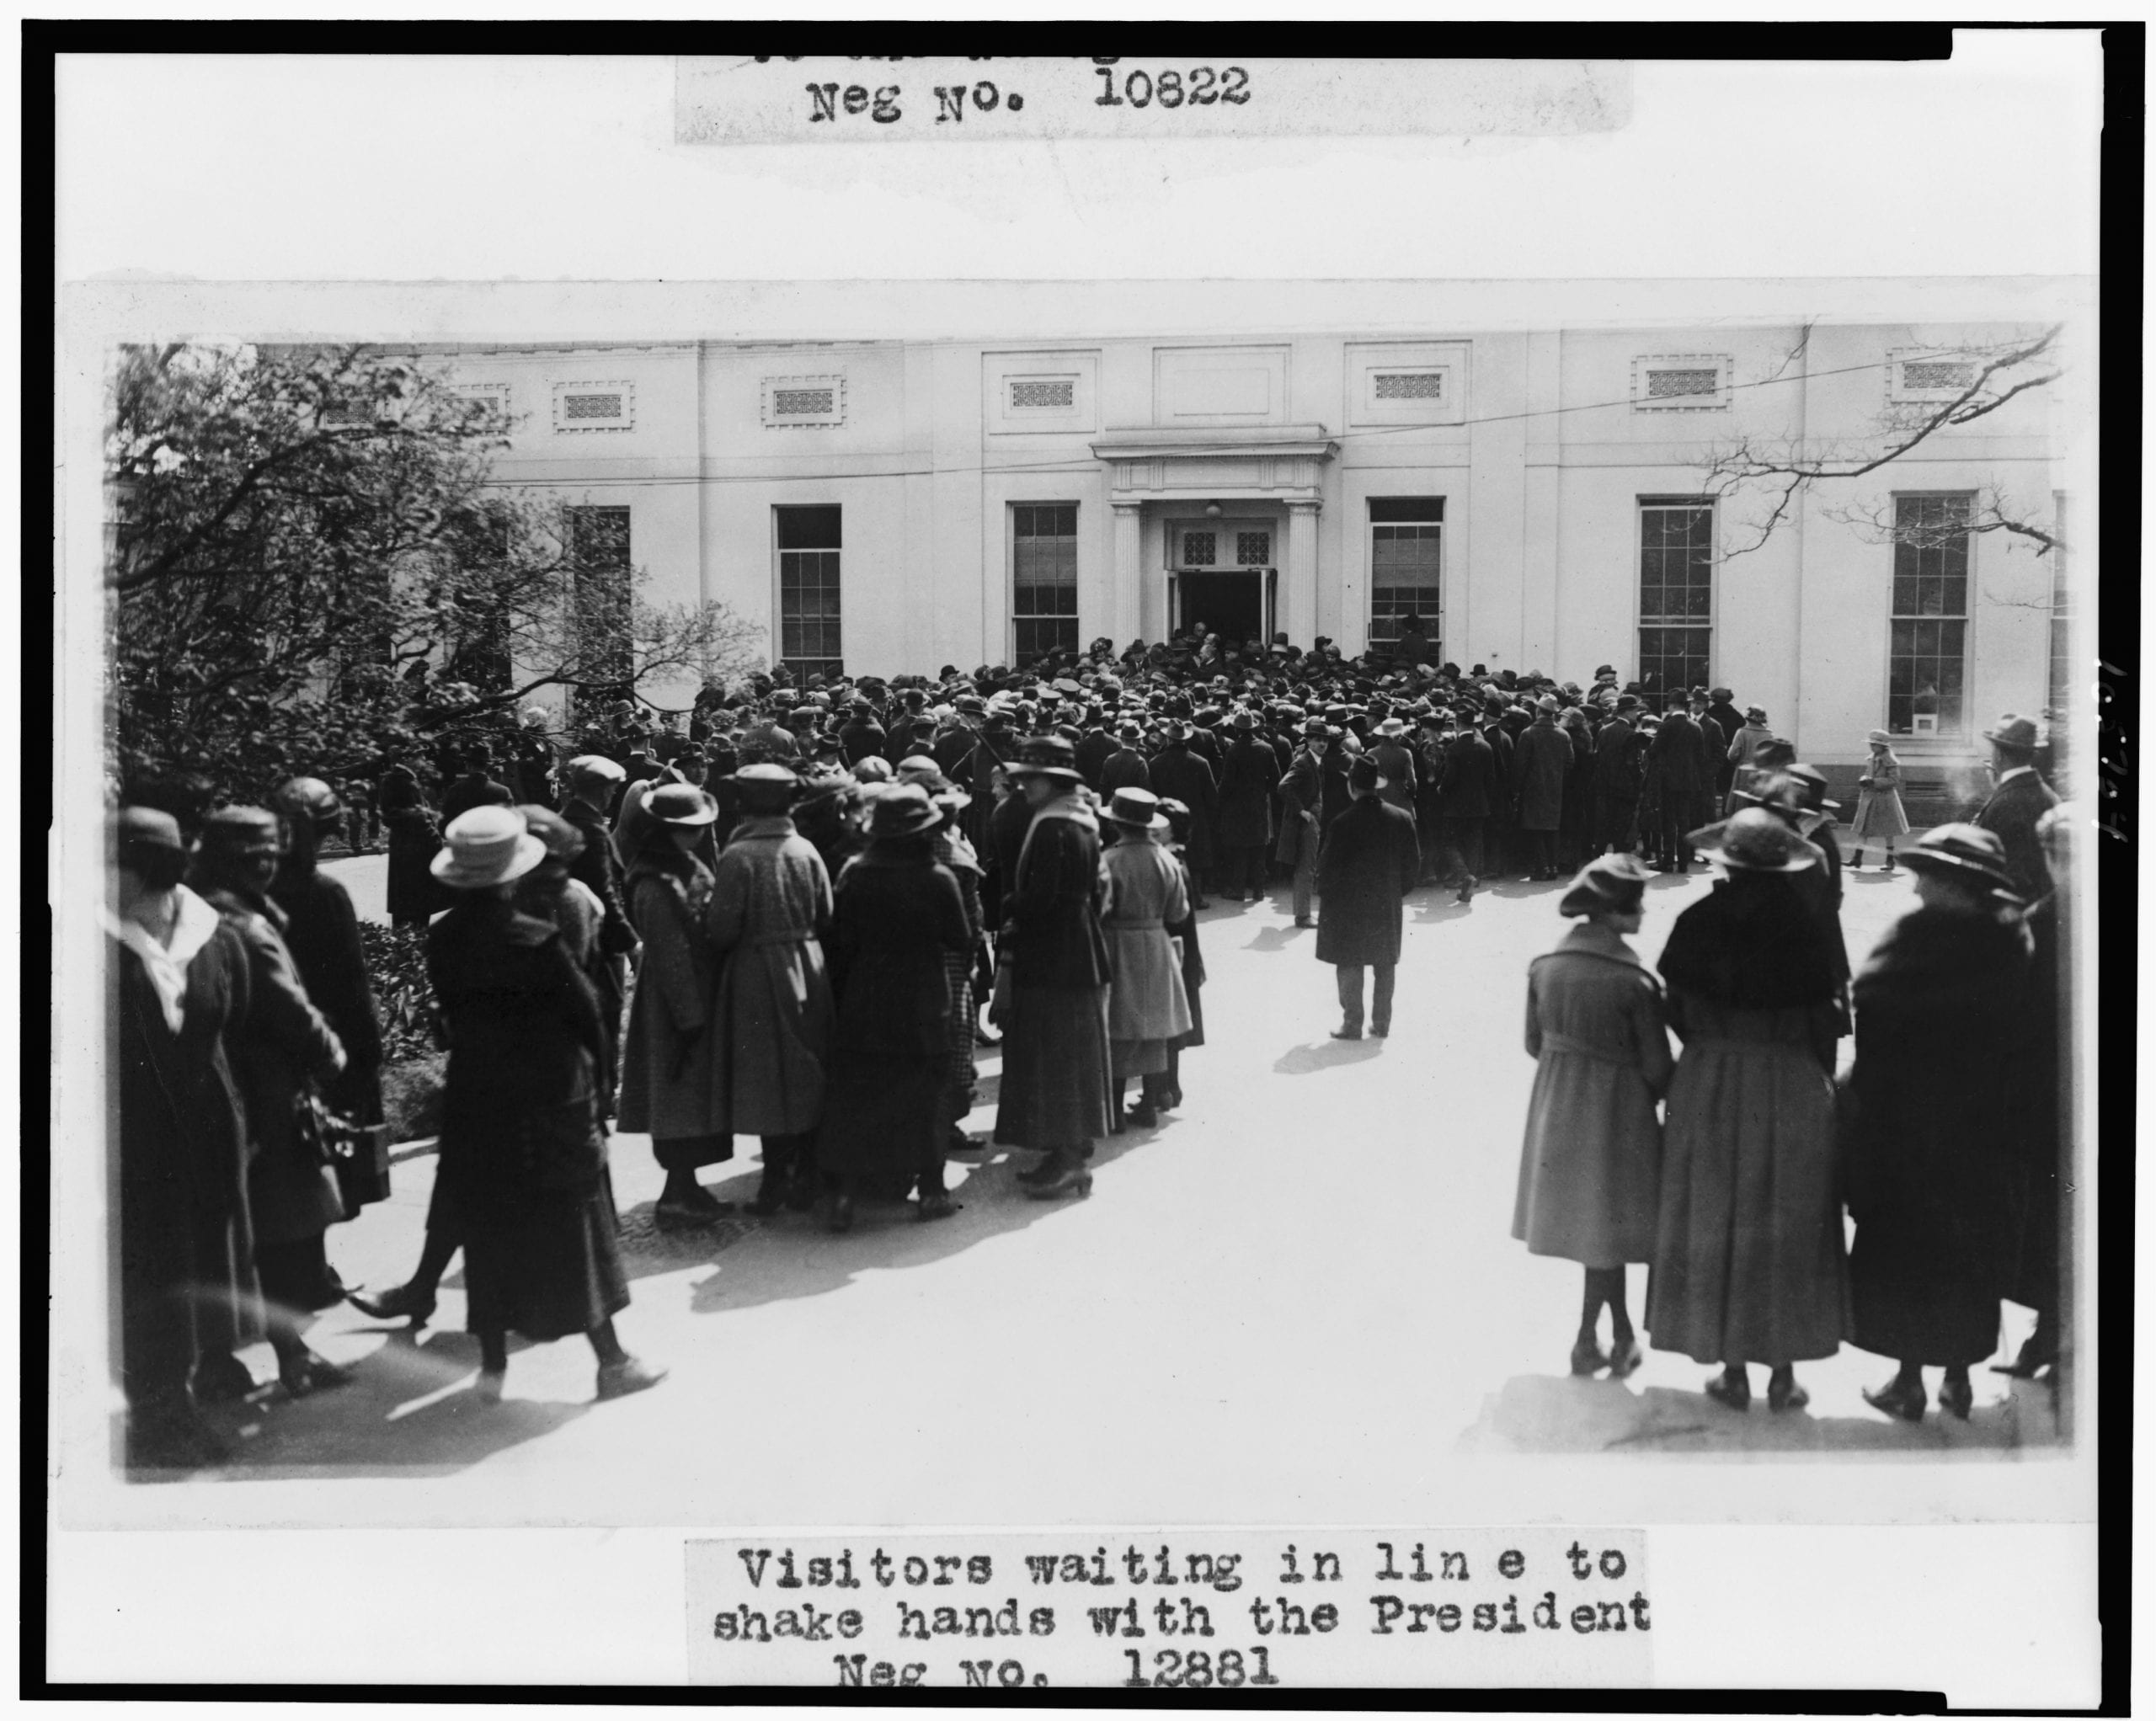 Visitors waiting in line to shake hands with the President (circa 1921)